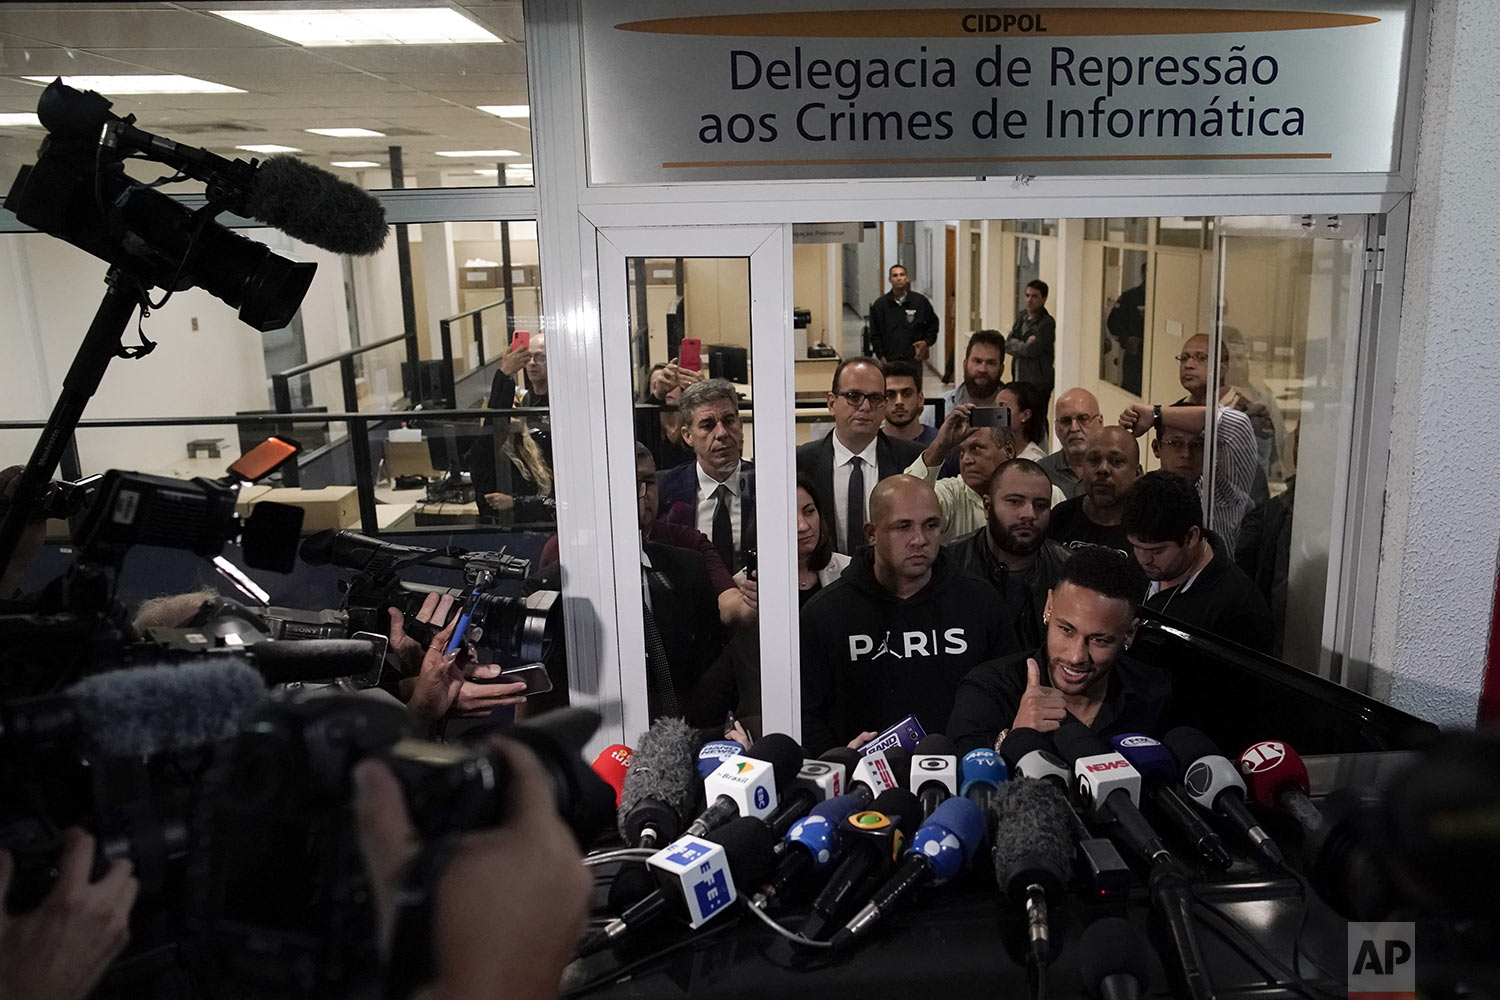 Brazilian soccer player Neymar gives a thumbs up after speaking to journalists as he leaves a police station where he spoke to police in Rio de Janeiro, Brazil, Thursday, June 6, 2019. Rio de Janeiro police said Thursday that soccer star Neymar was expected to testify in the investigation linked to a woman's rape allegation against him. (AP Photo/Leo Correa)